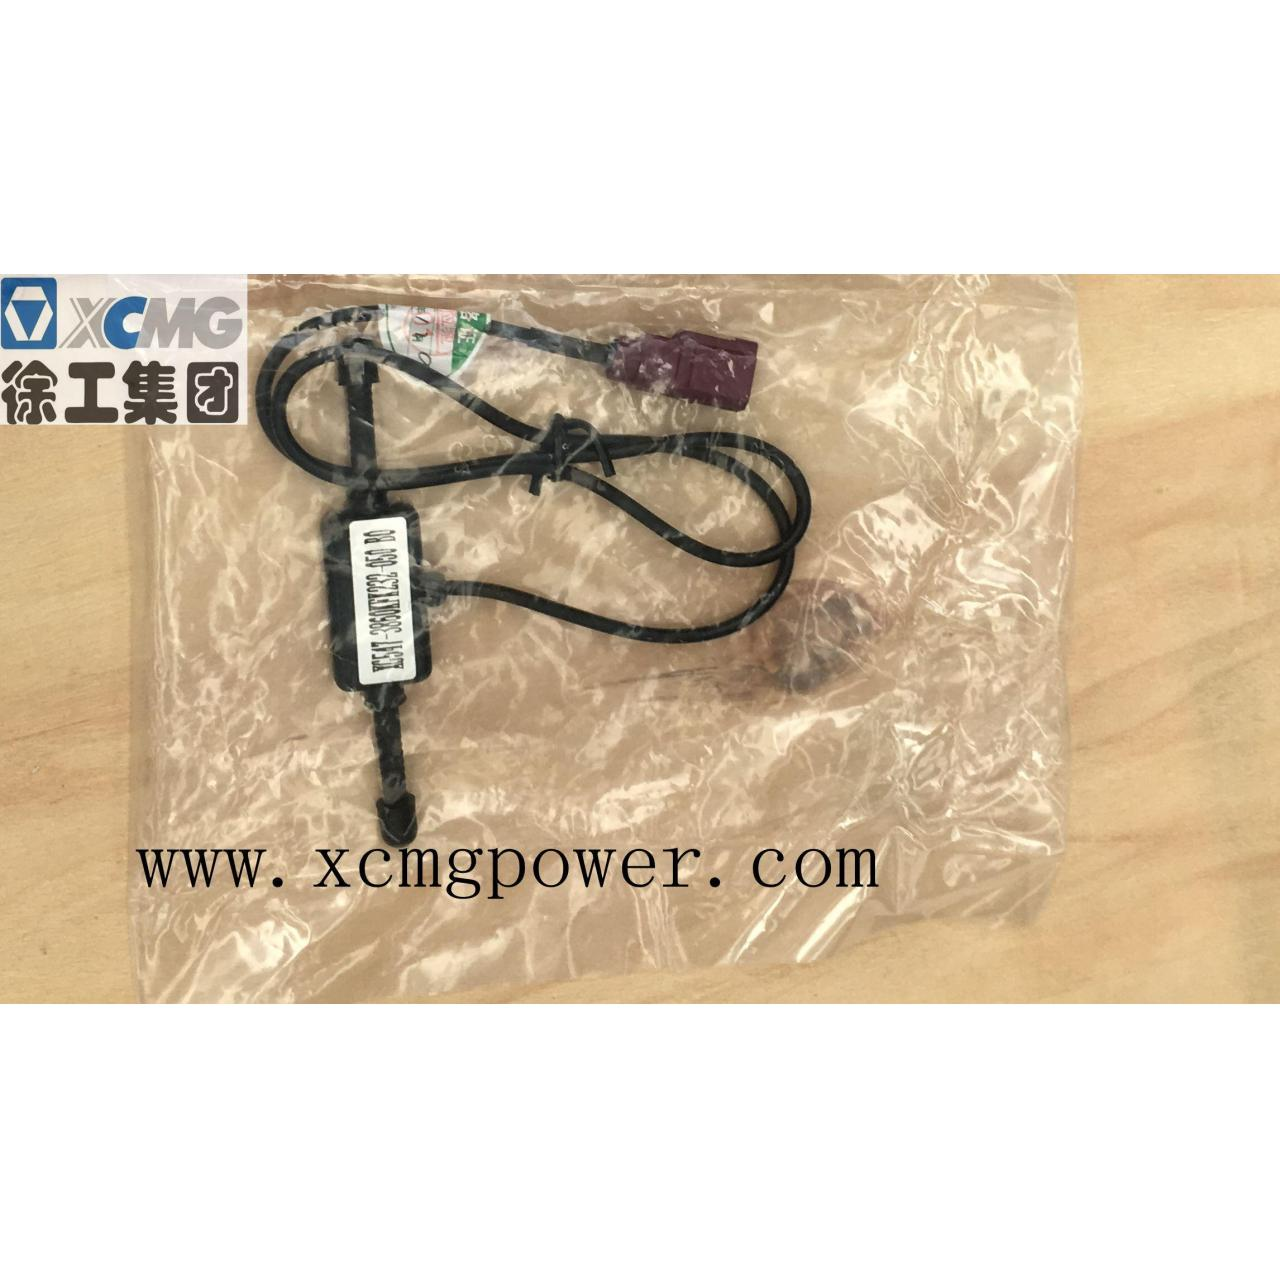 XCMG GSM Antenna XCMG Truck Parts Center